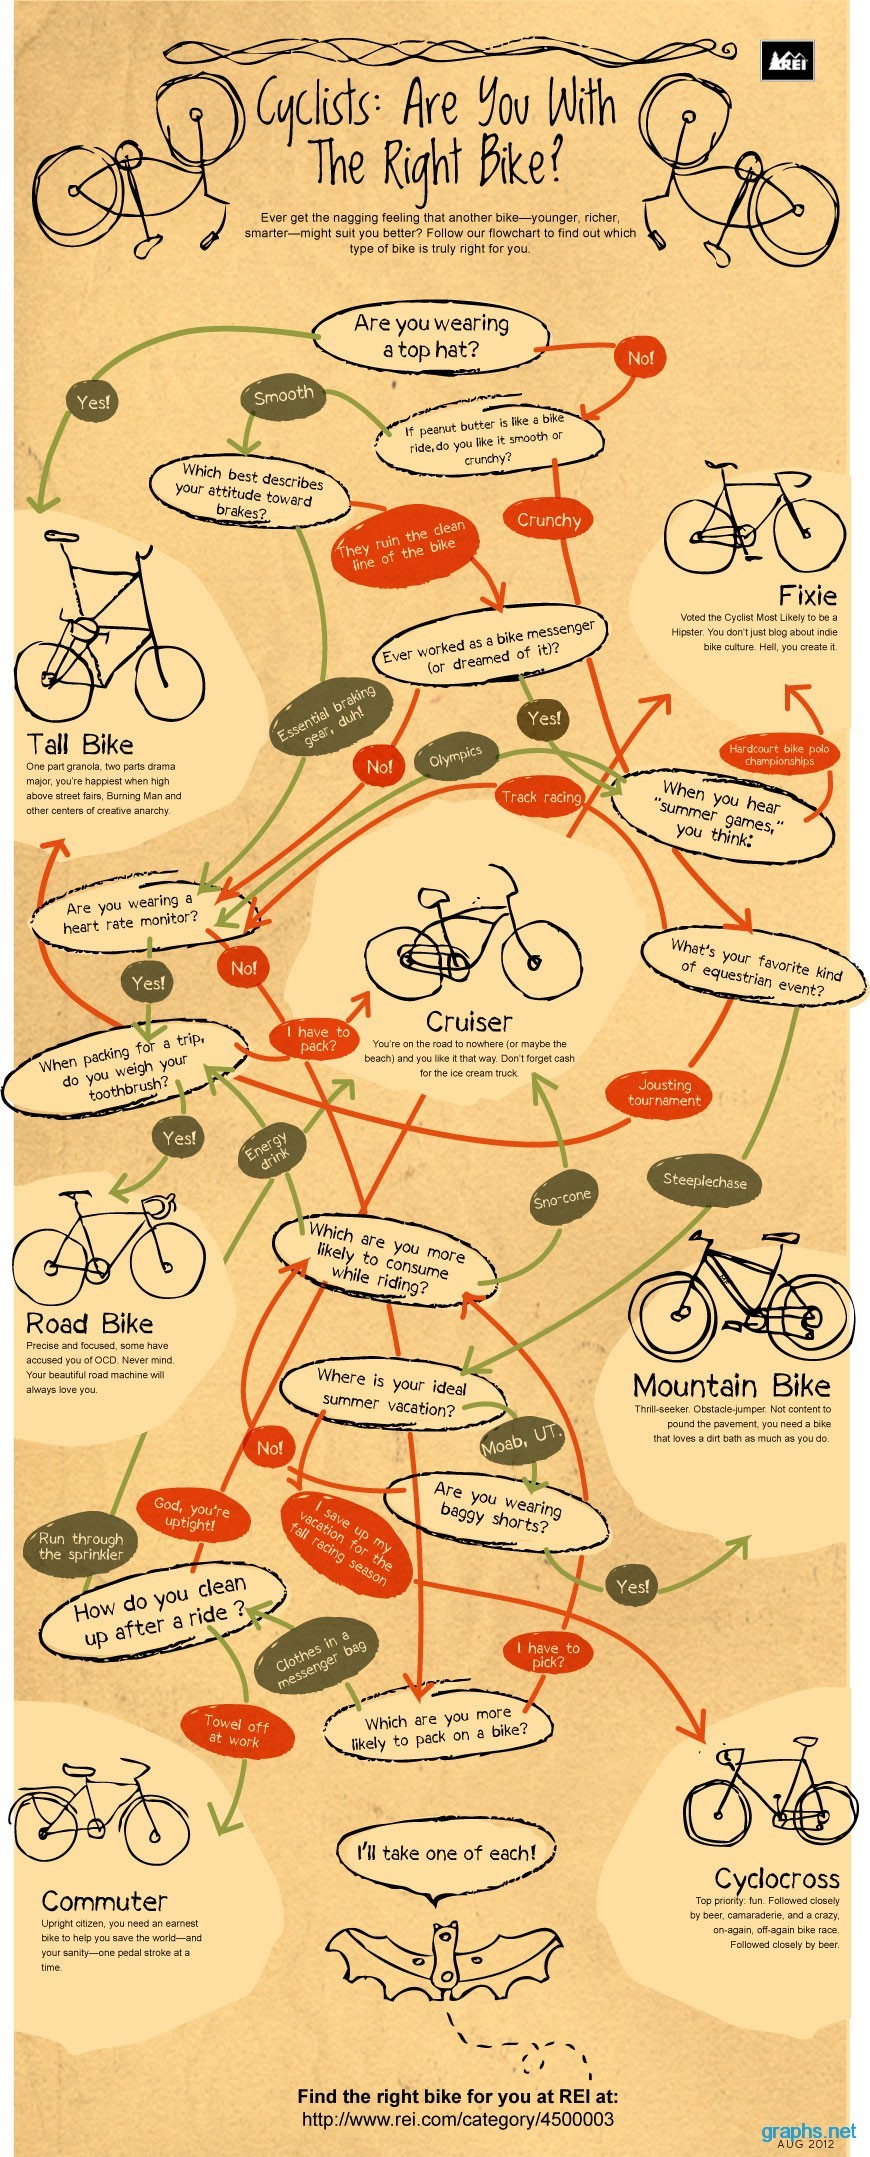 Cyclists Facts